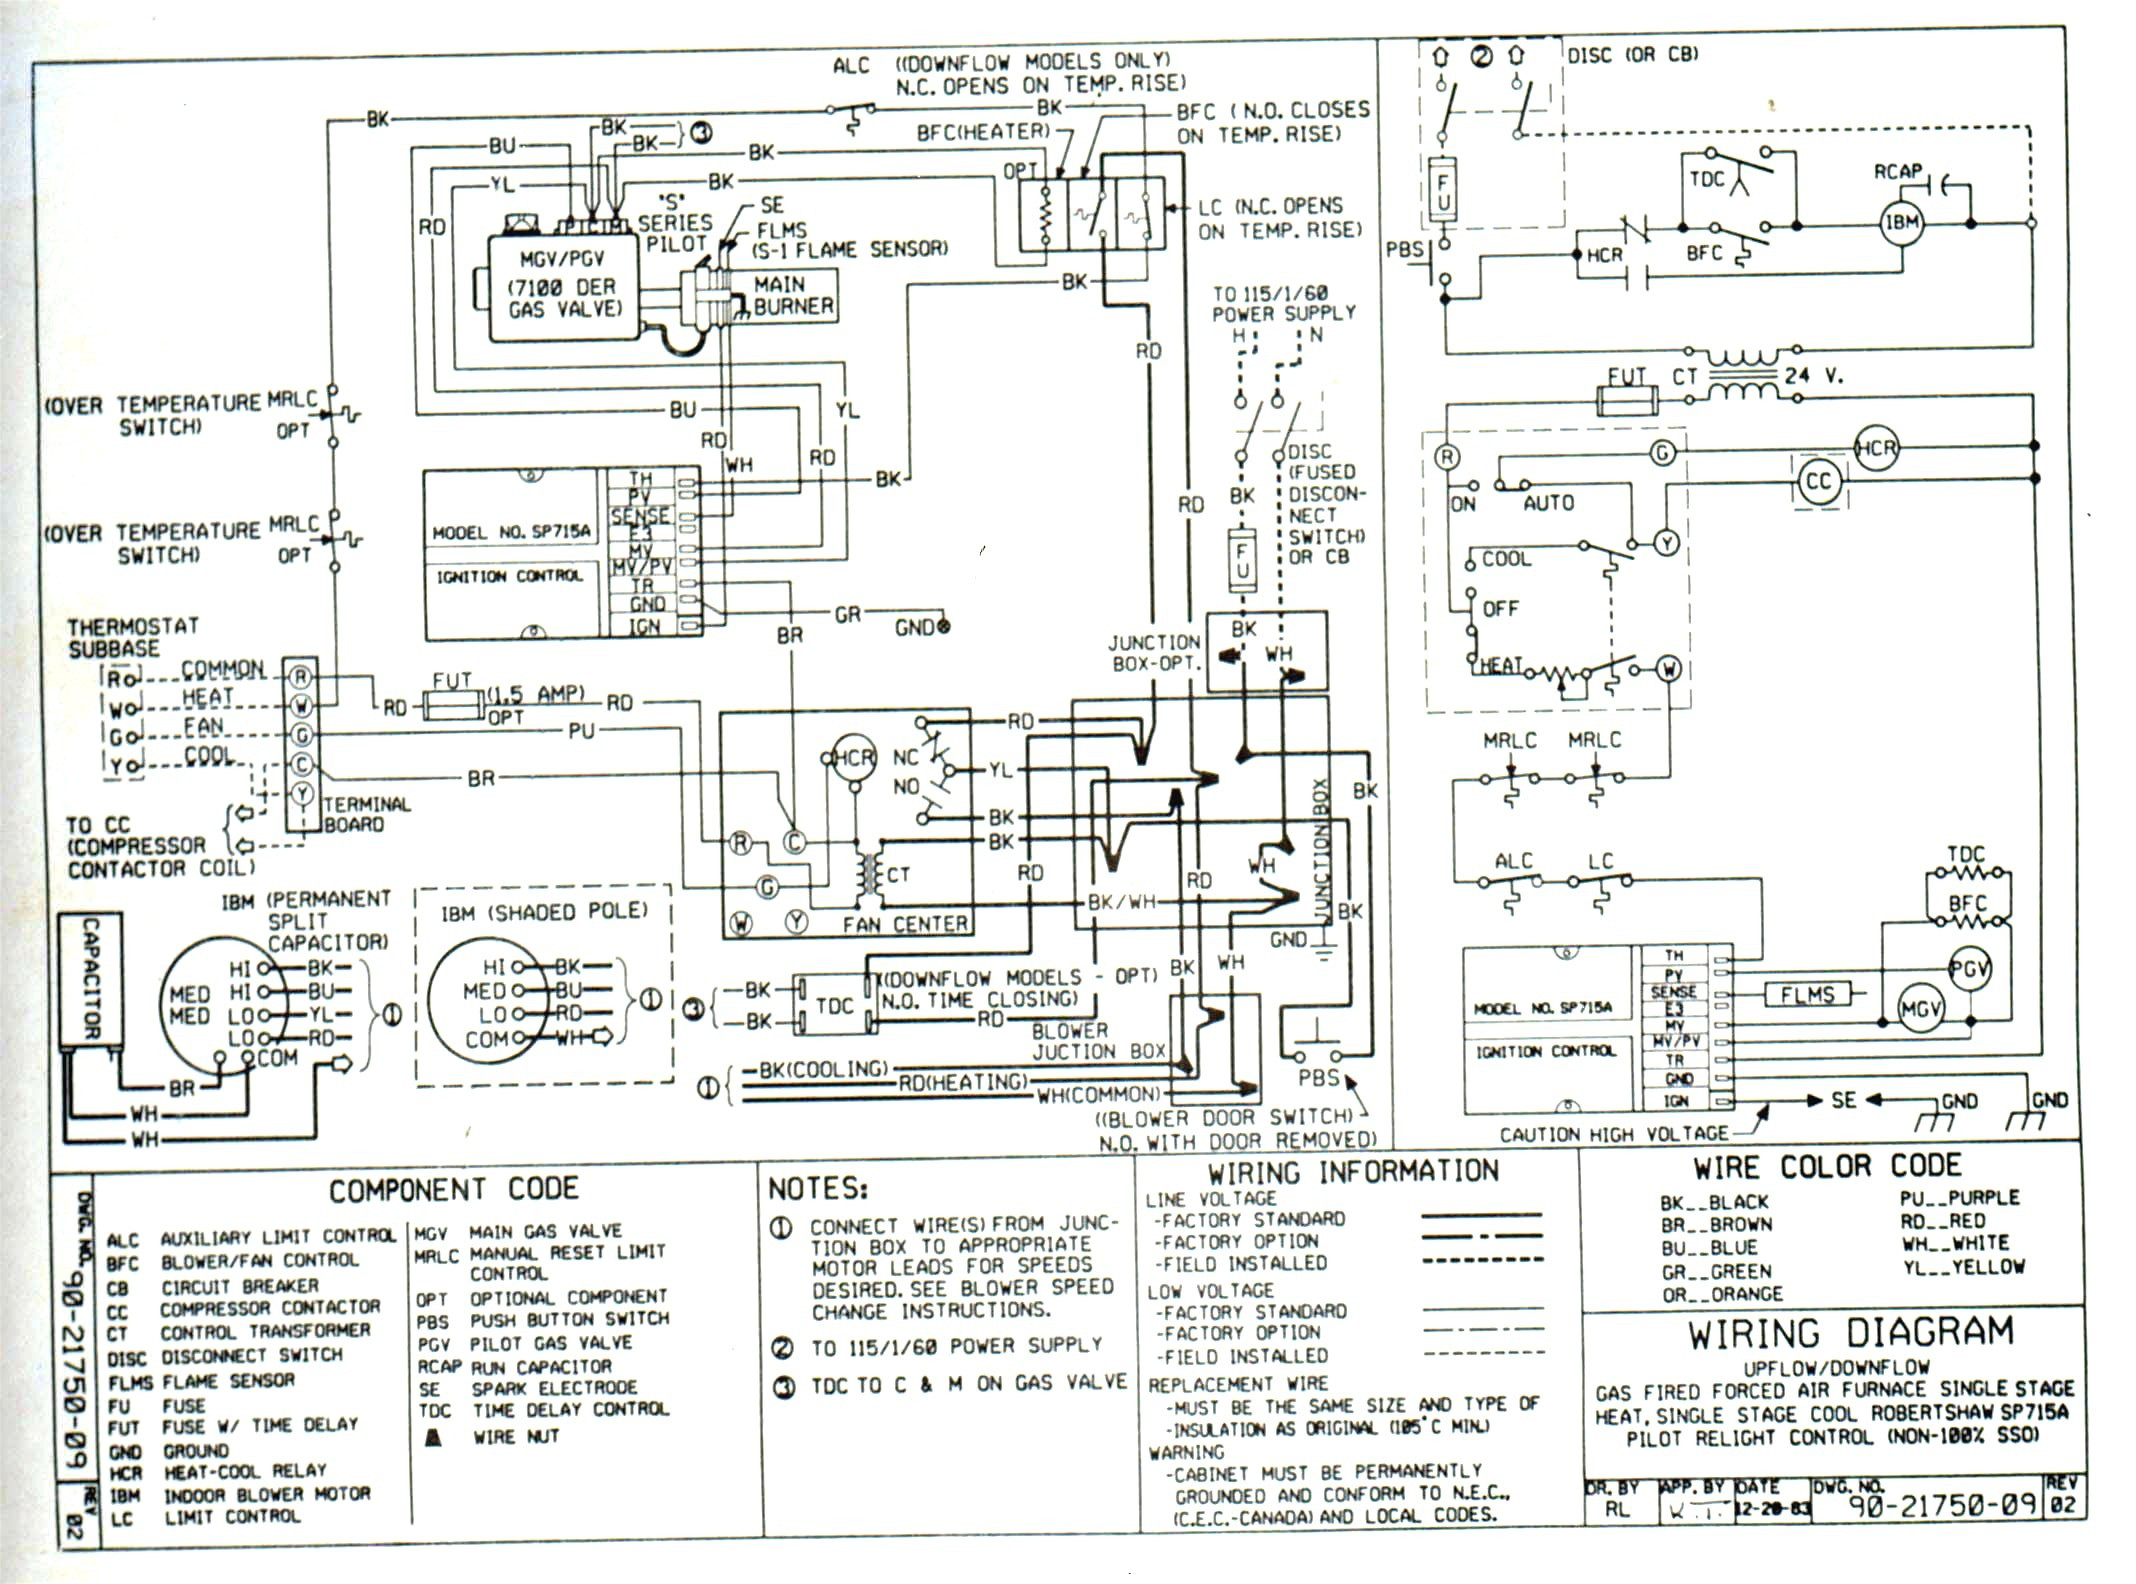 intertherm ac unit wiring diagram Collection-Heil Ac Wiring Diagram Fresh Intertherm Diagram Electric Wiring Furnace A Wiring Diagram 14-m